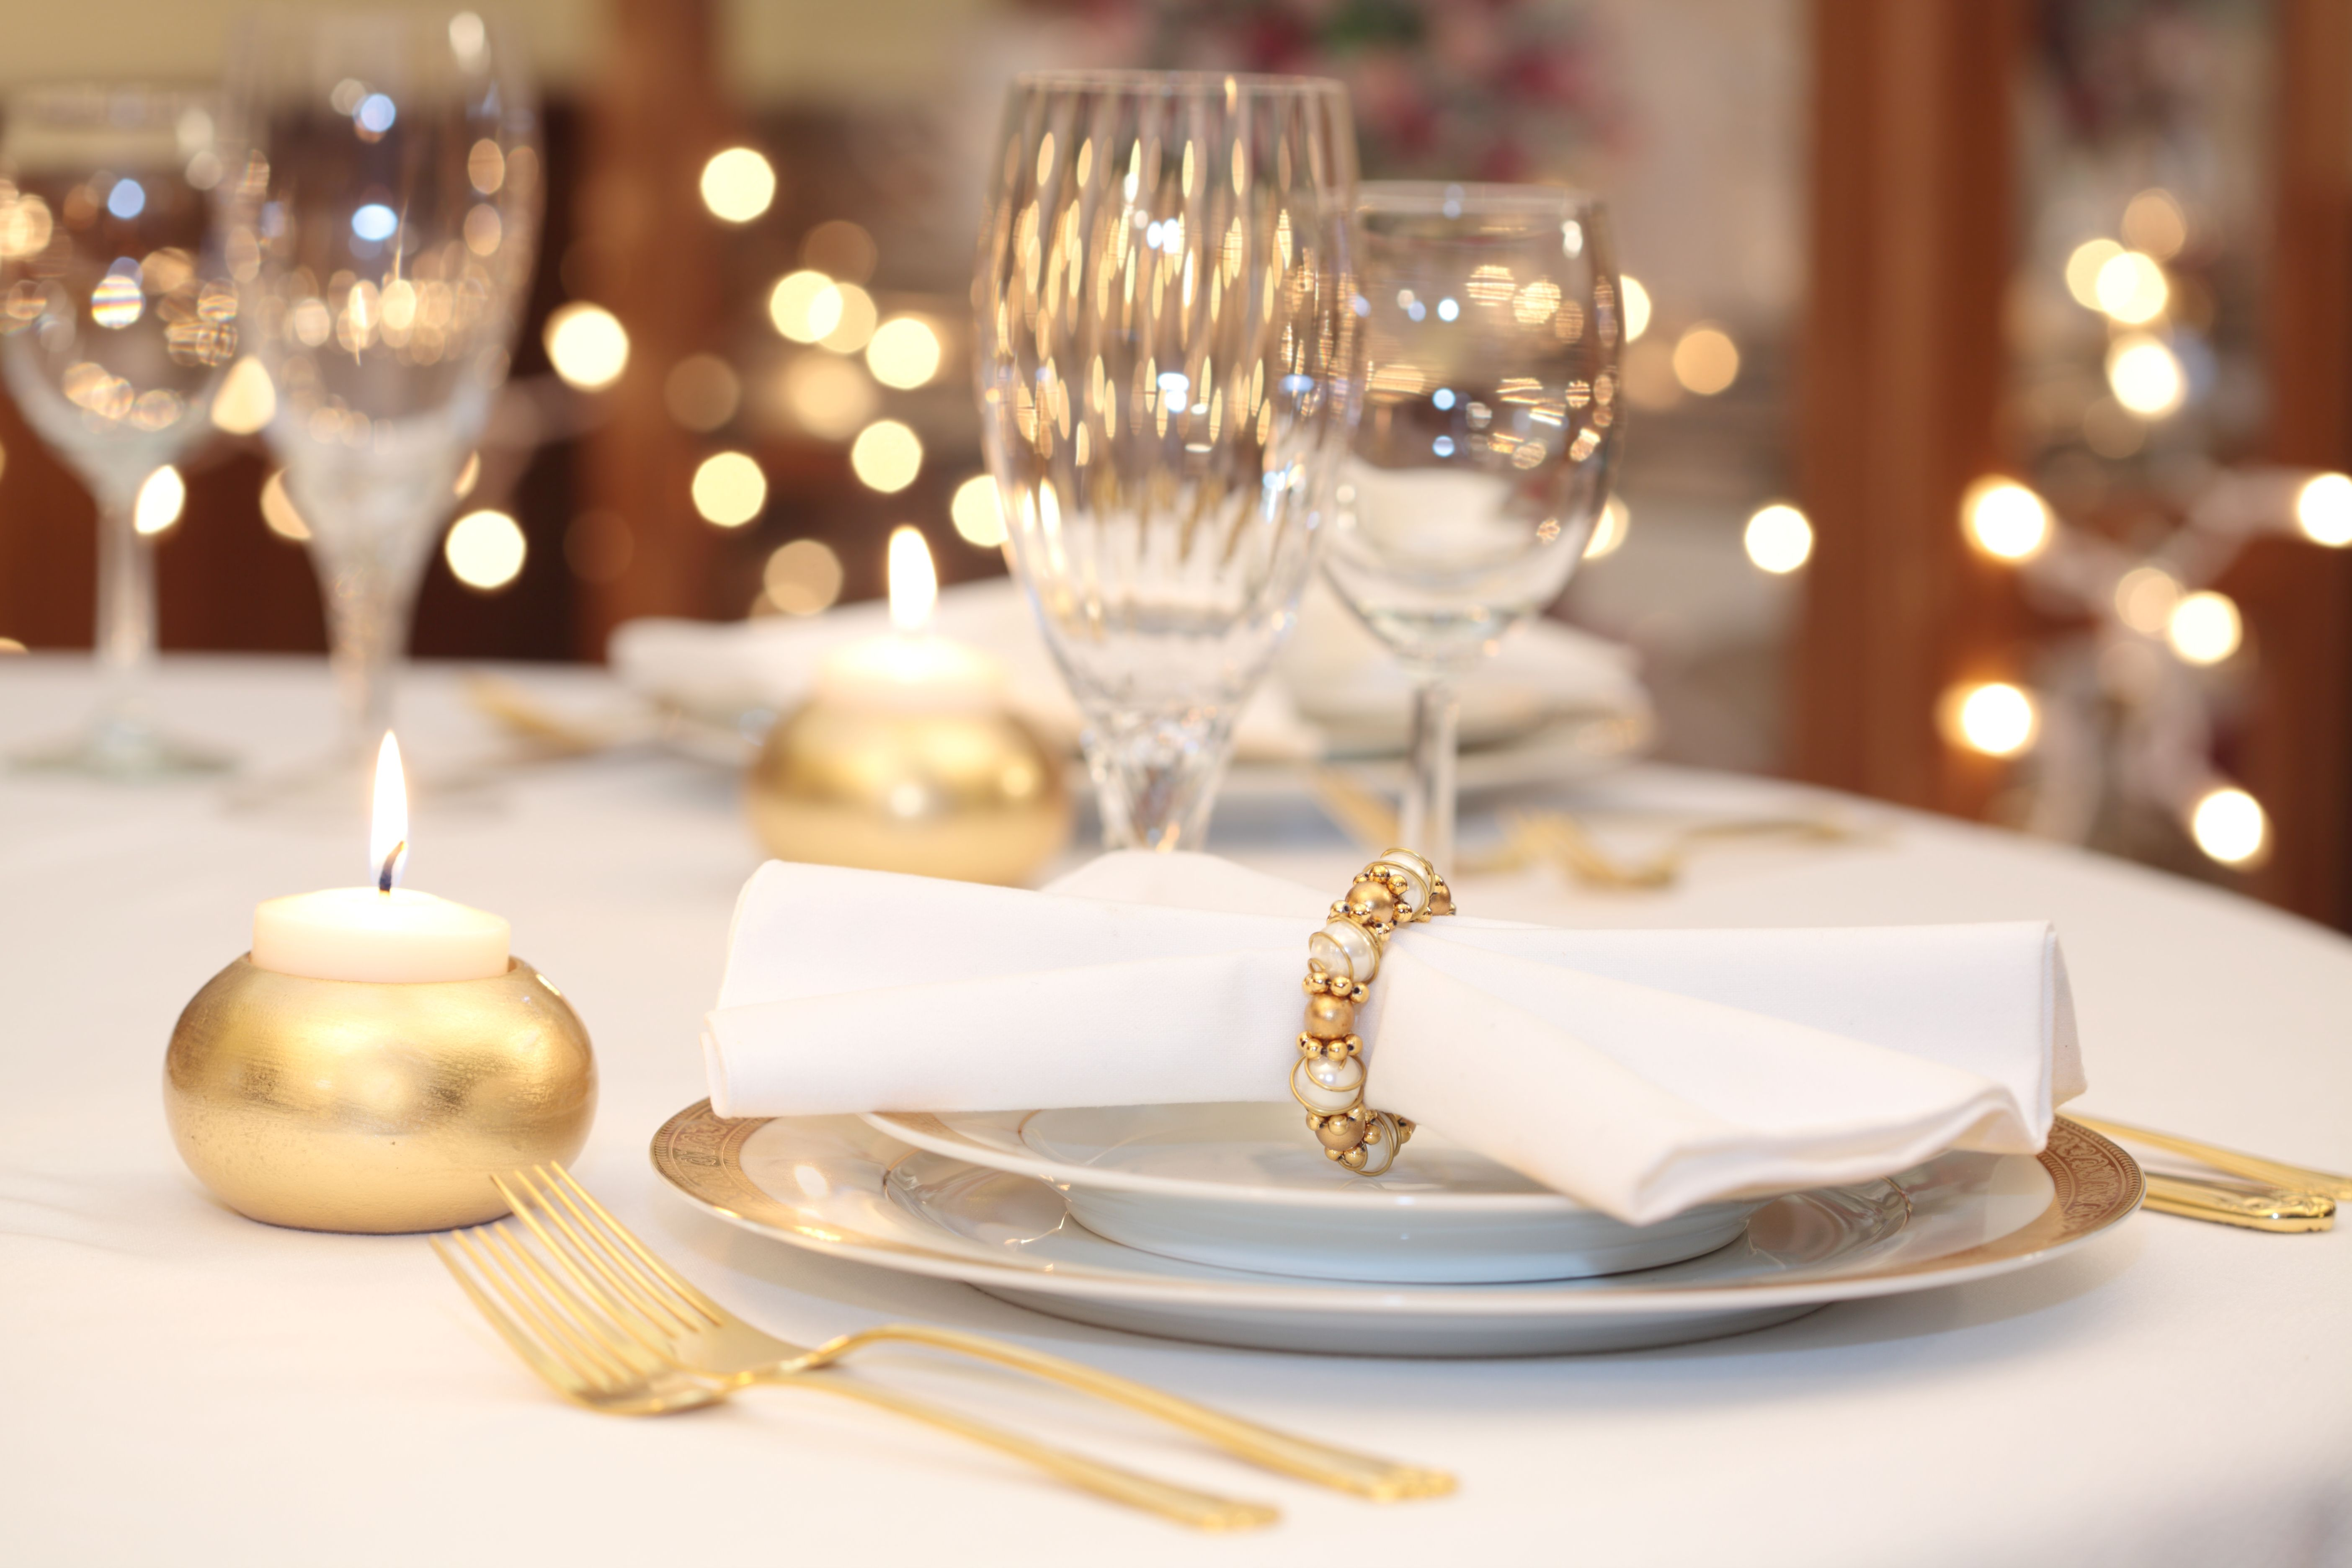 Gold china and flatware